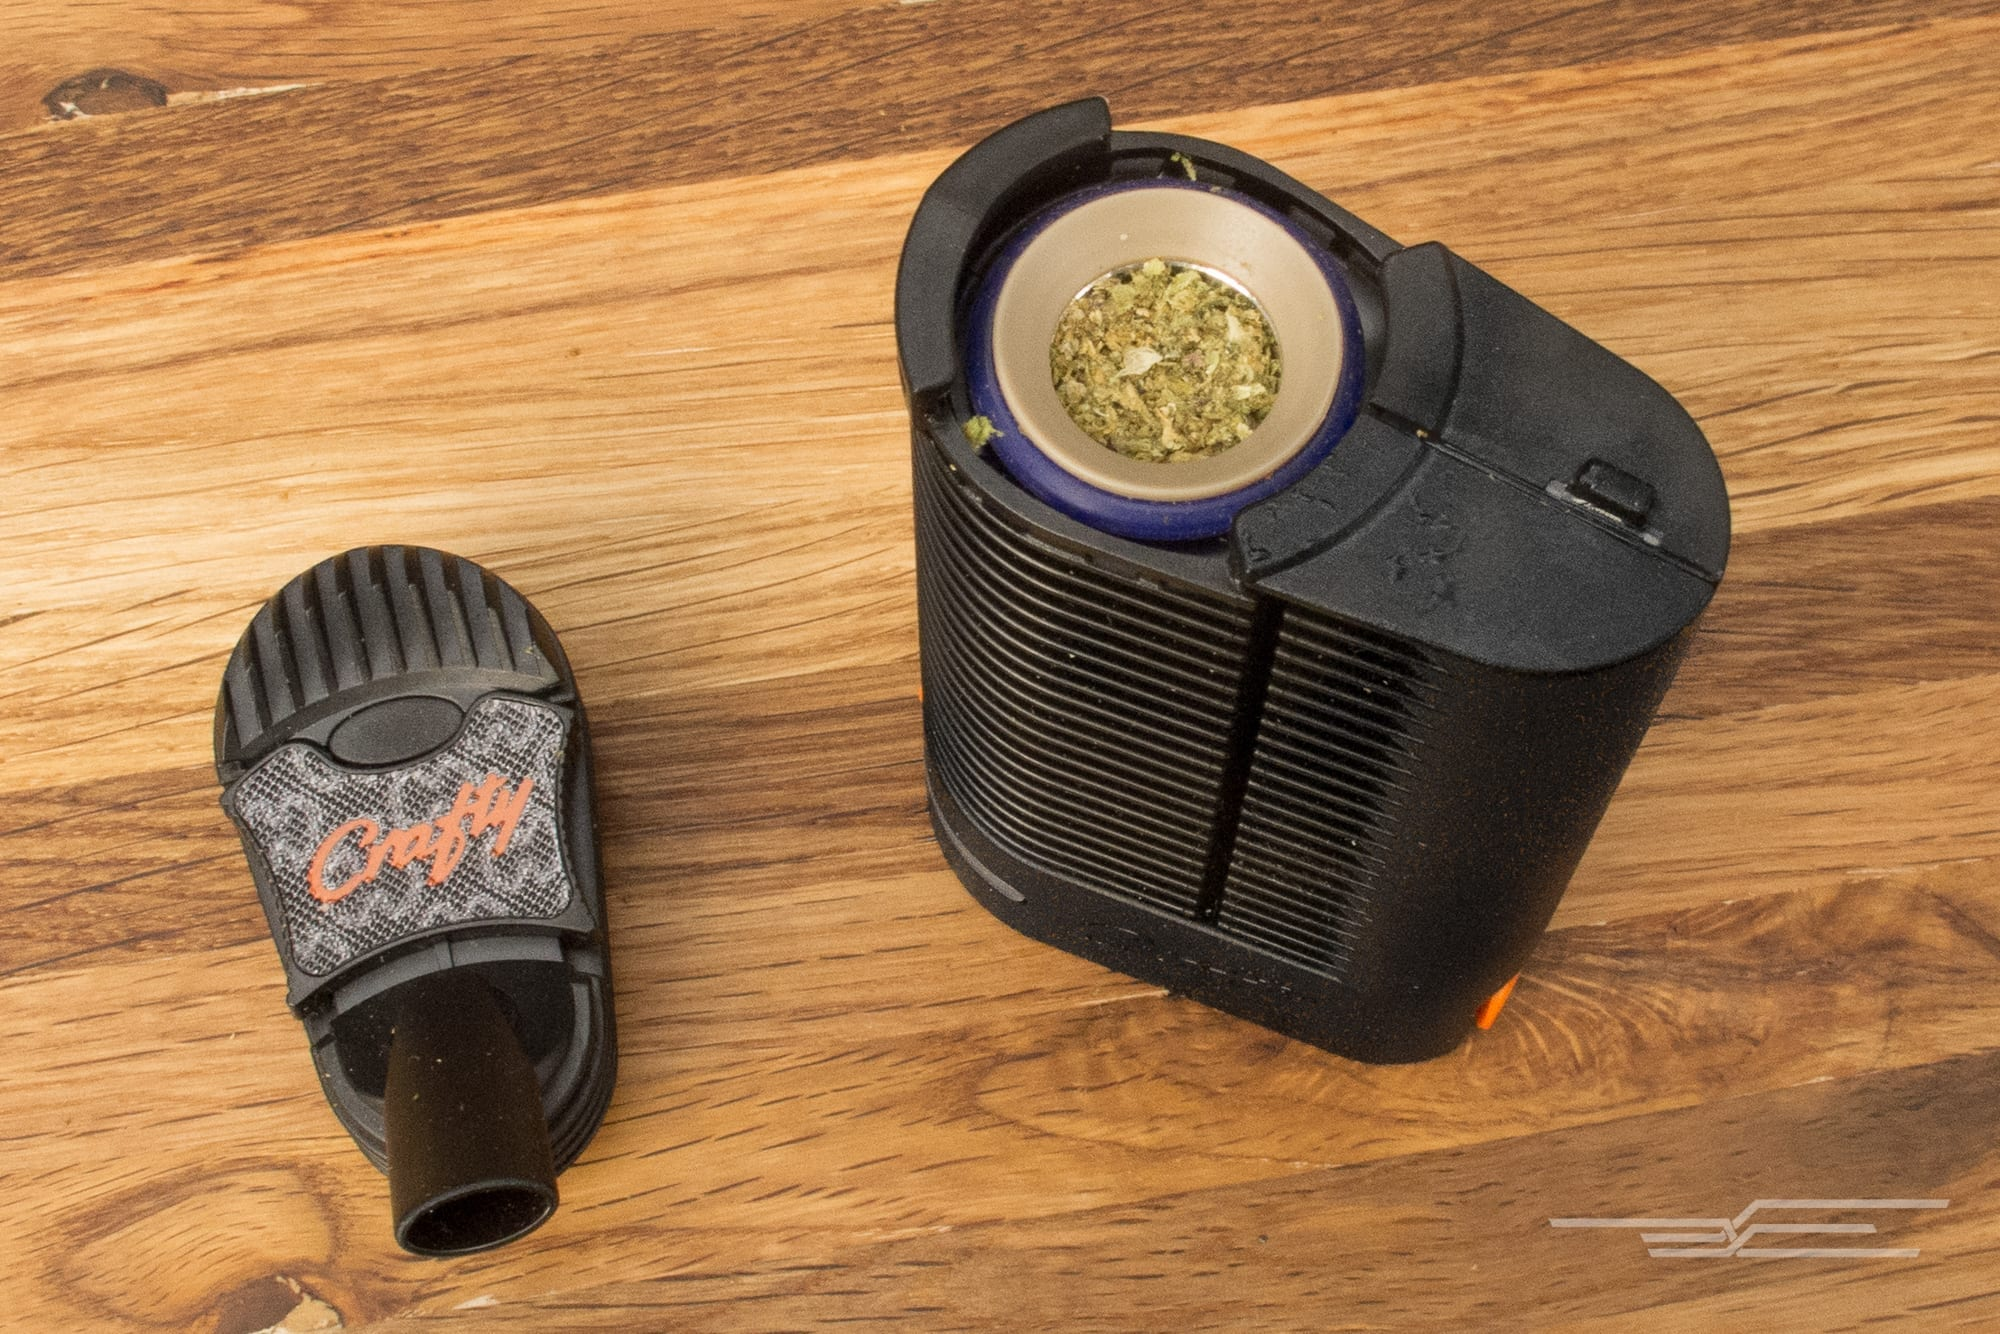 #5 Best Portable Vaporizers for Weed